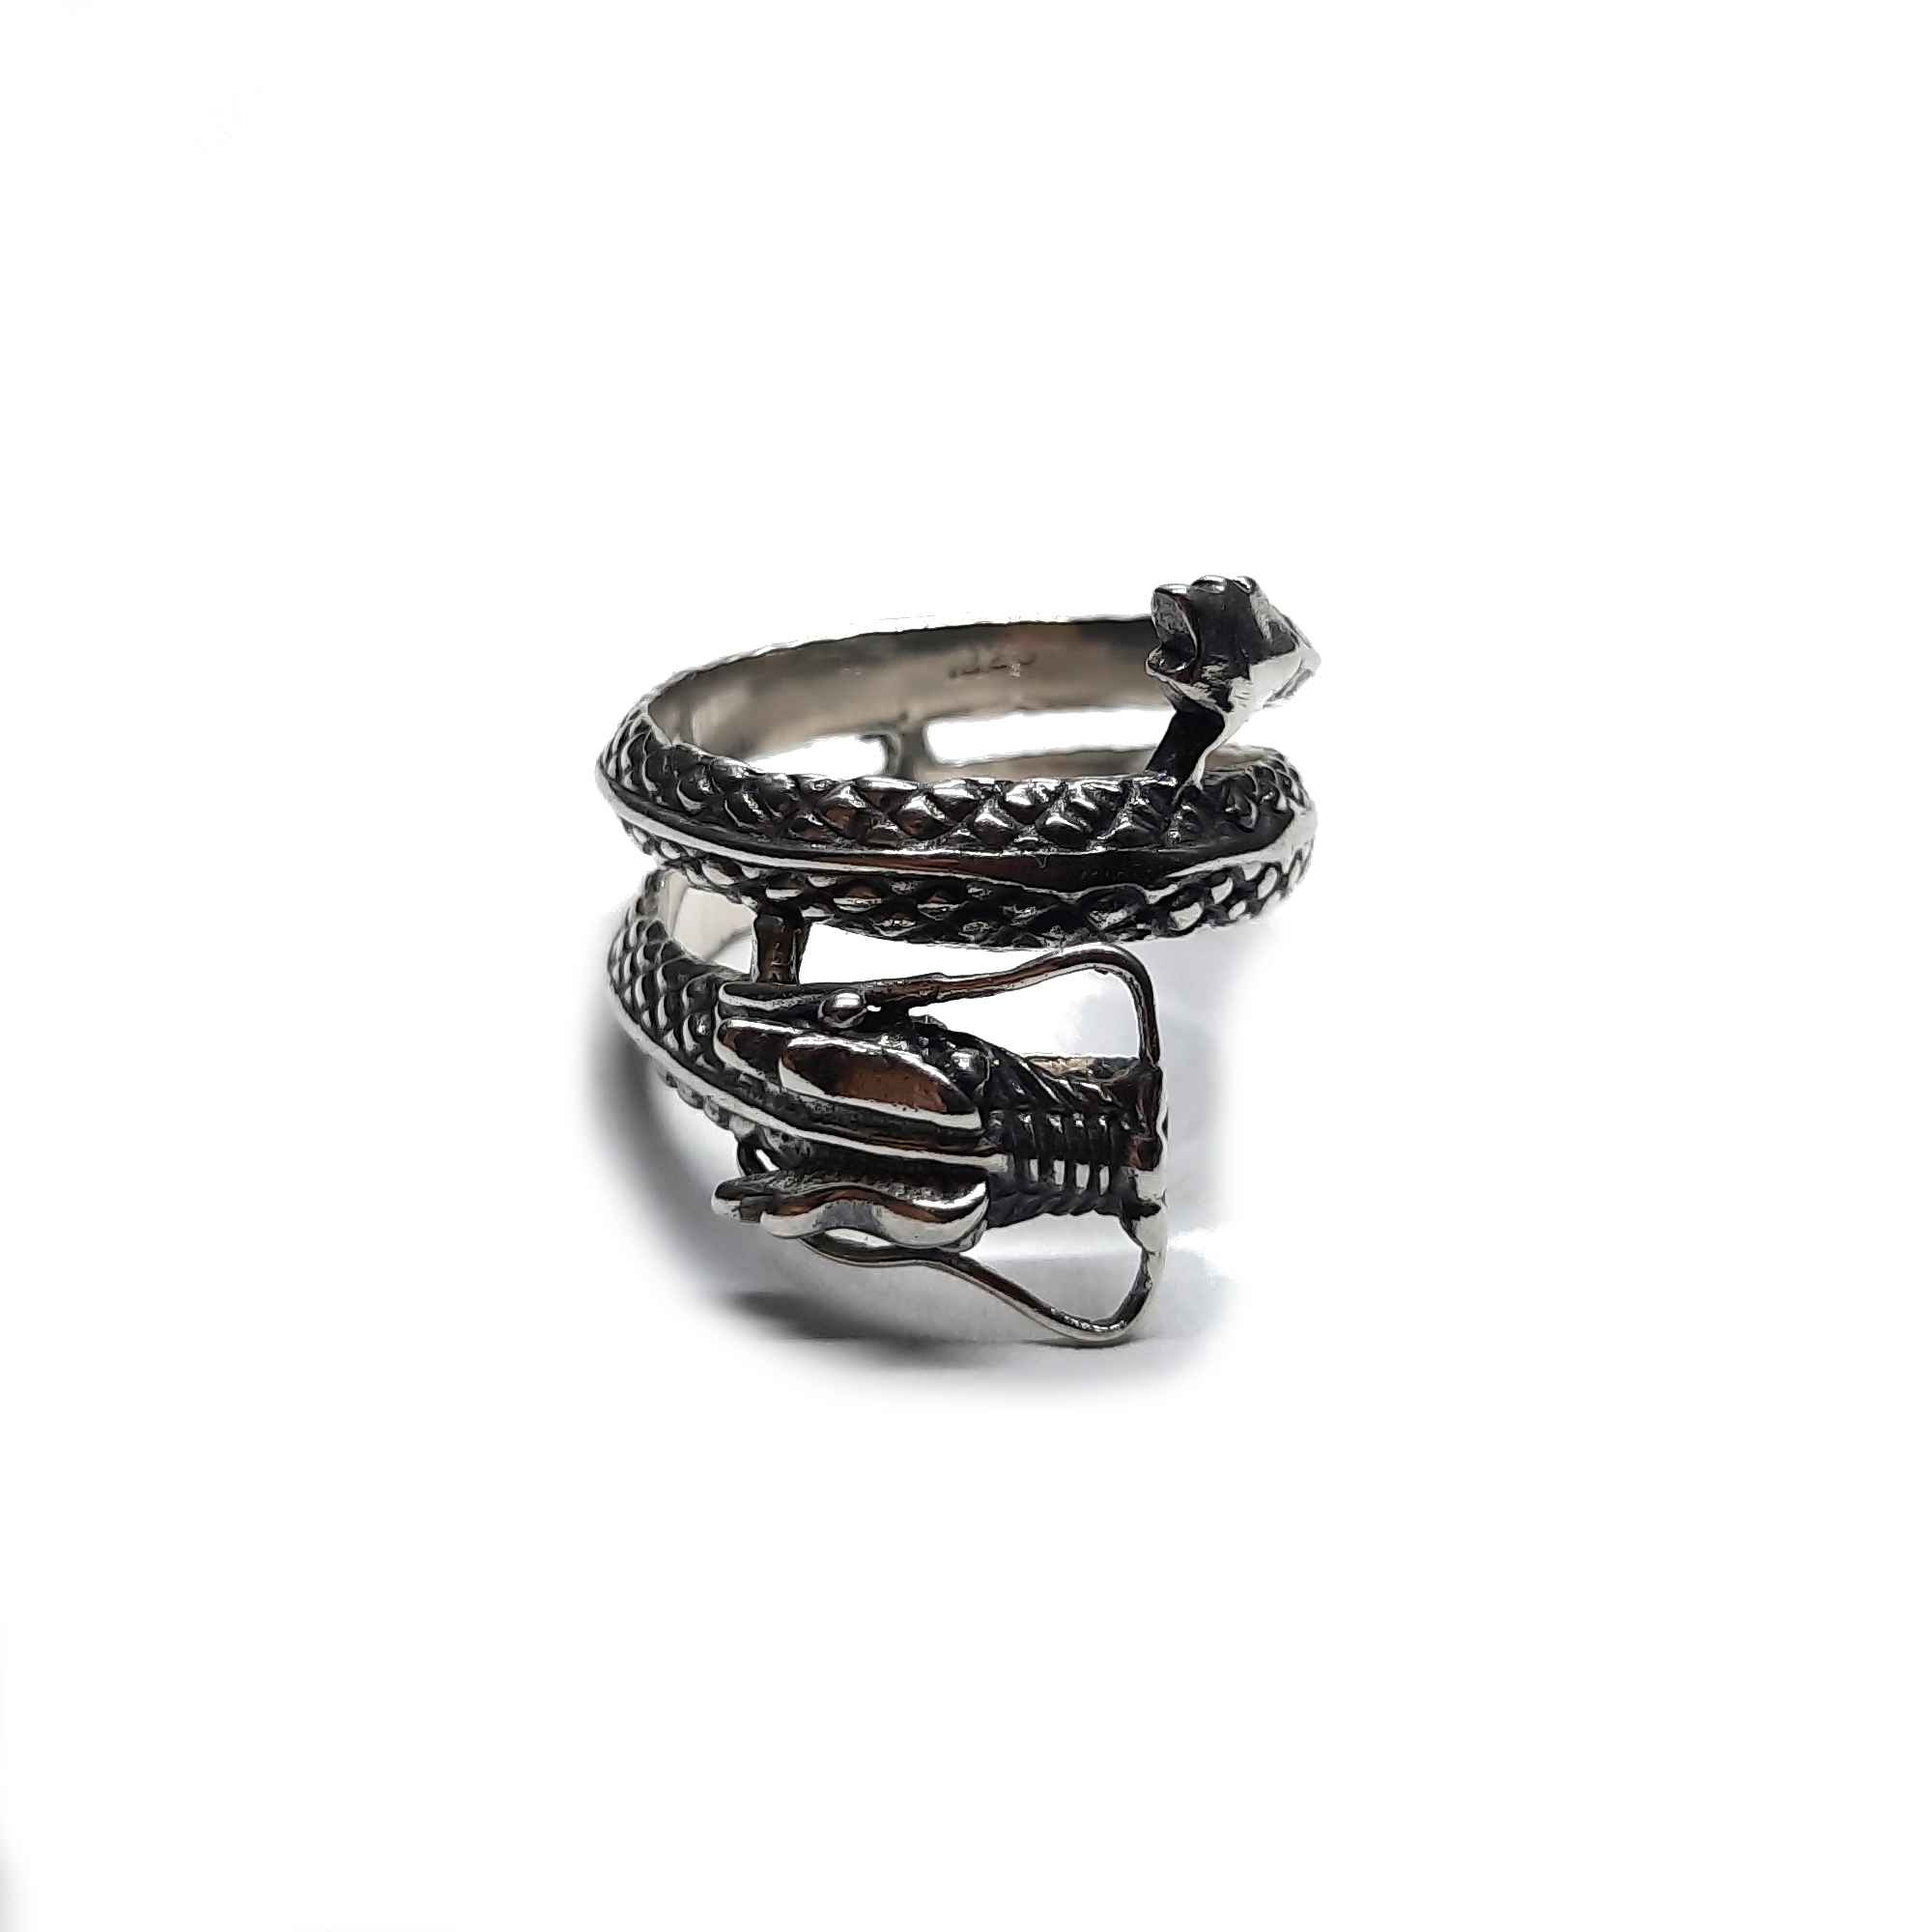 Silver ring - R002199